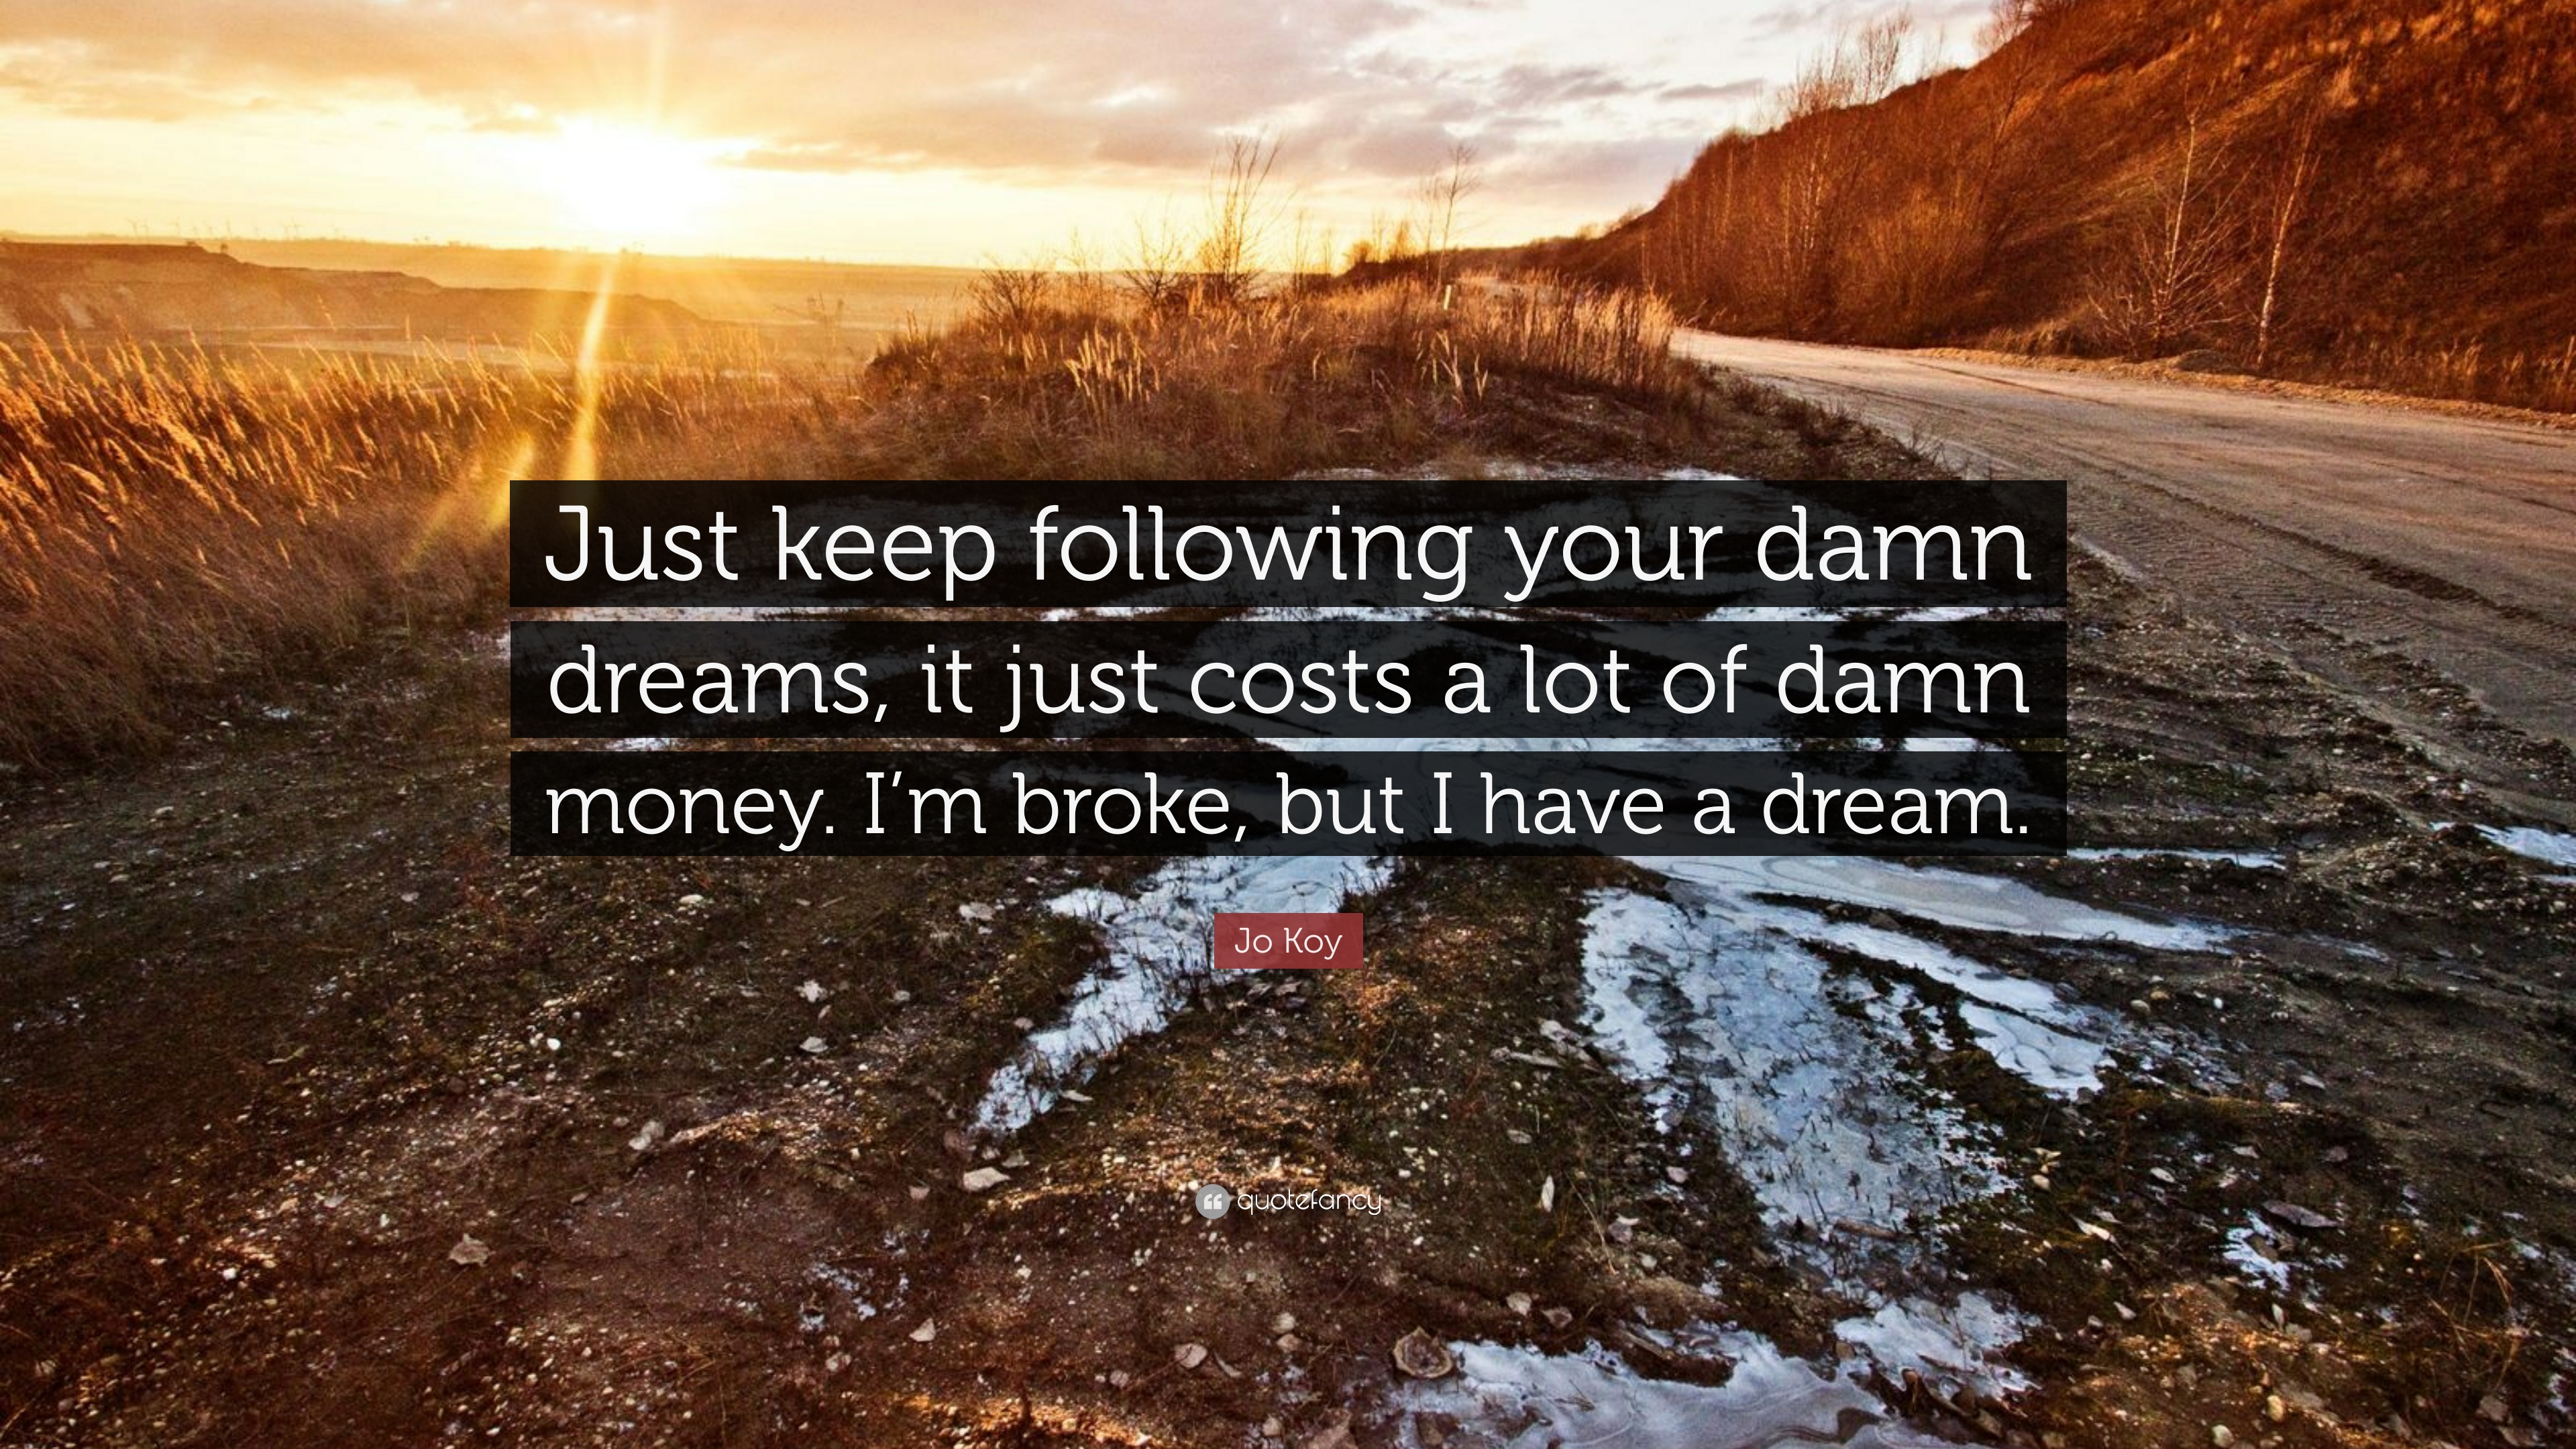 Why dream a lot of money 9